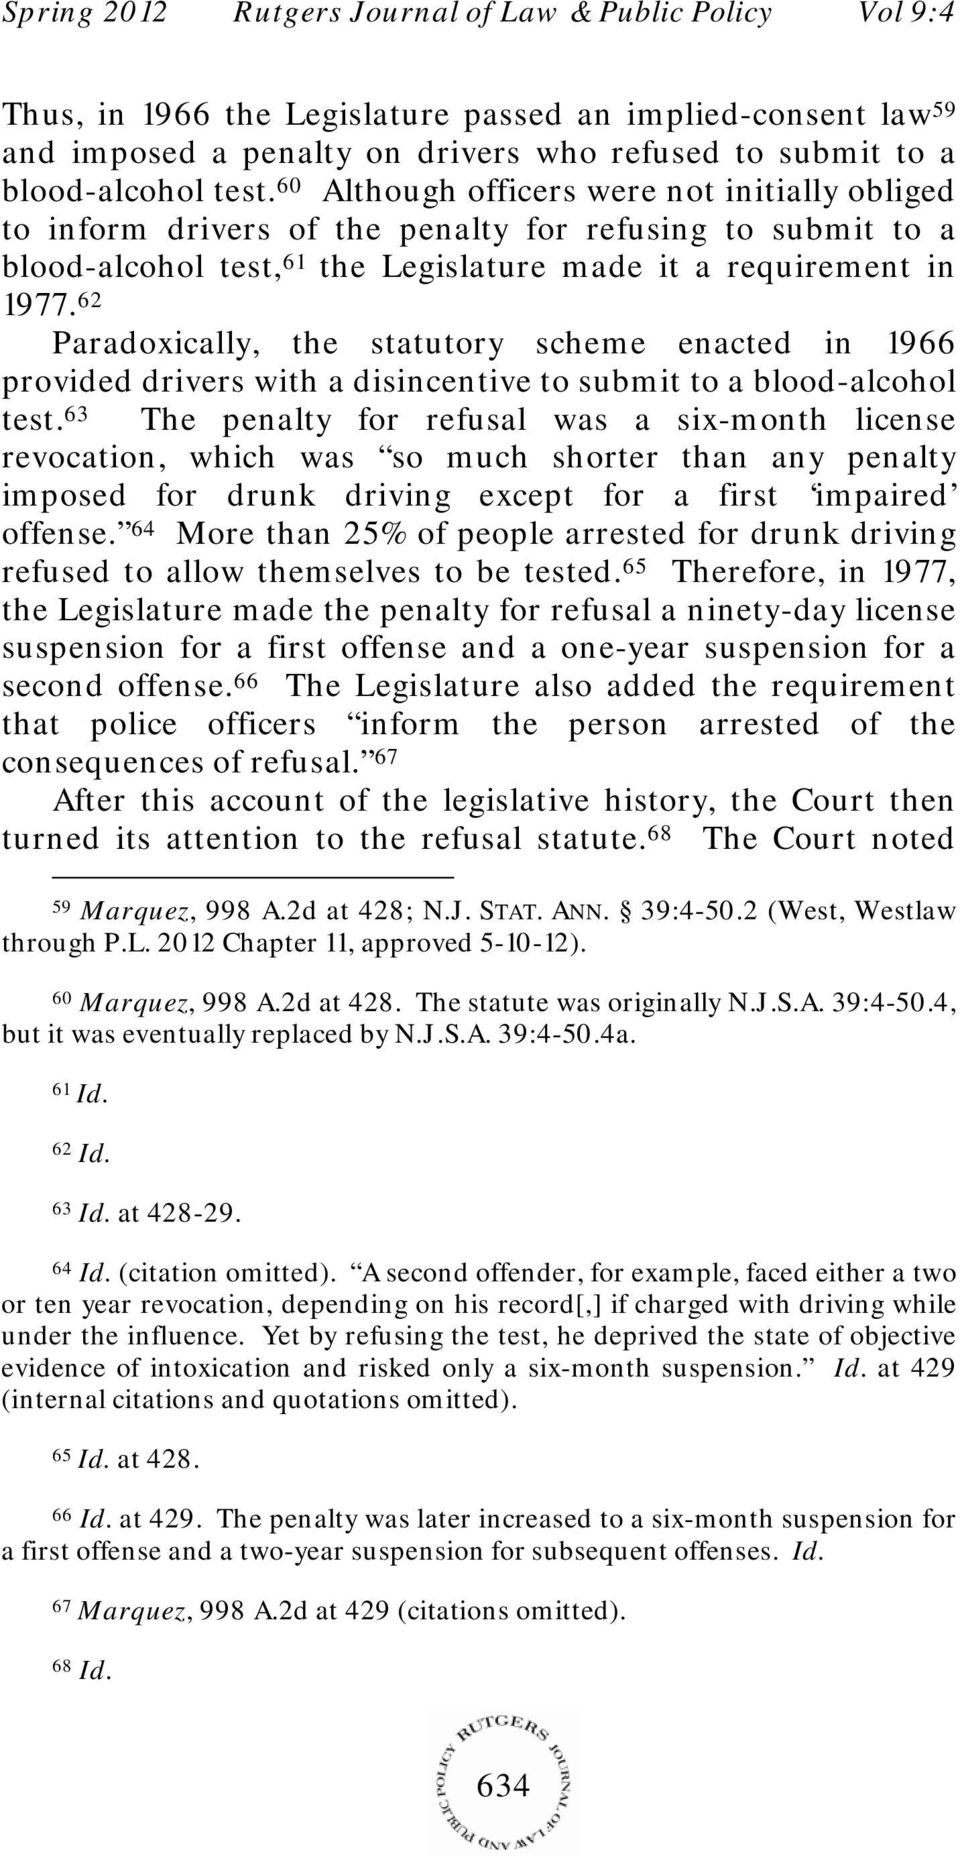 62 Paradoxically, the statutory scheme enacted in 1966 provided drivers with a disincentive to submit to a blood-alcohol test.